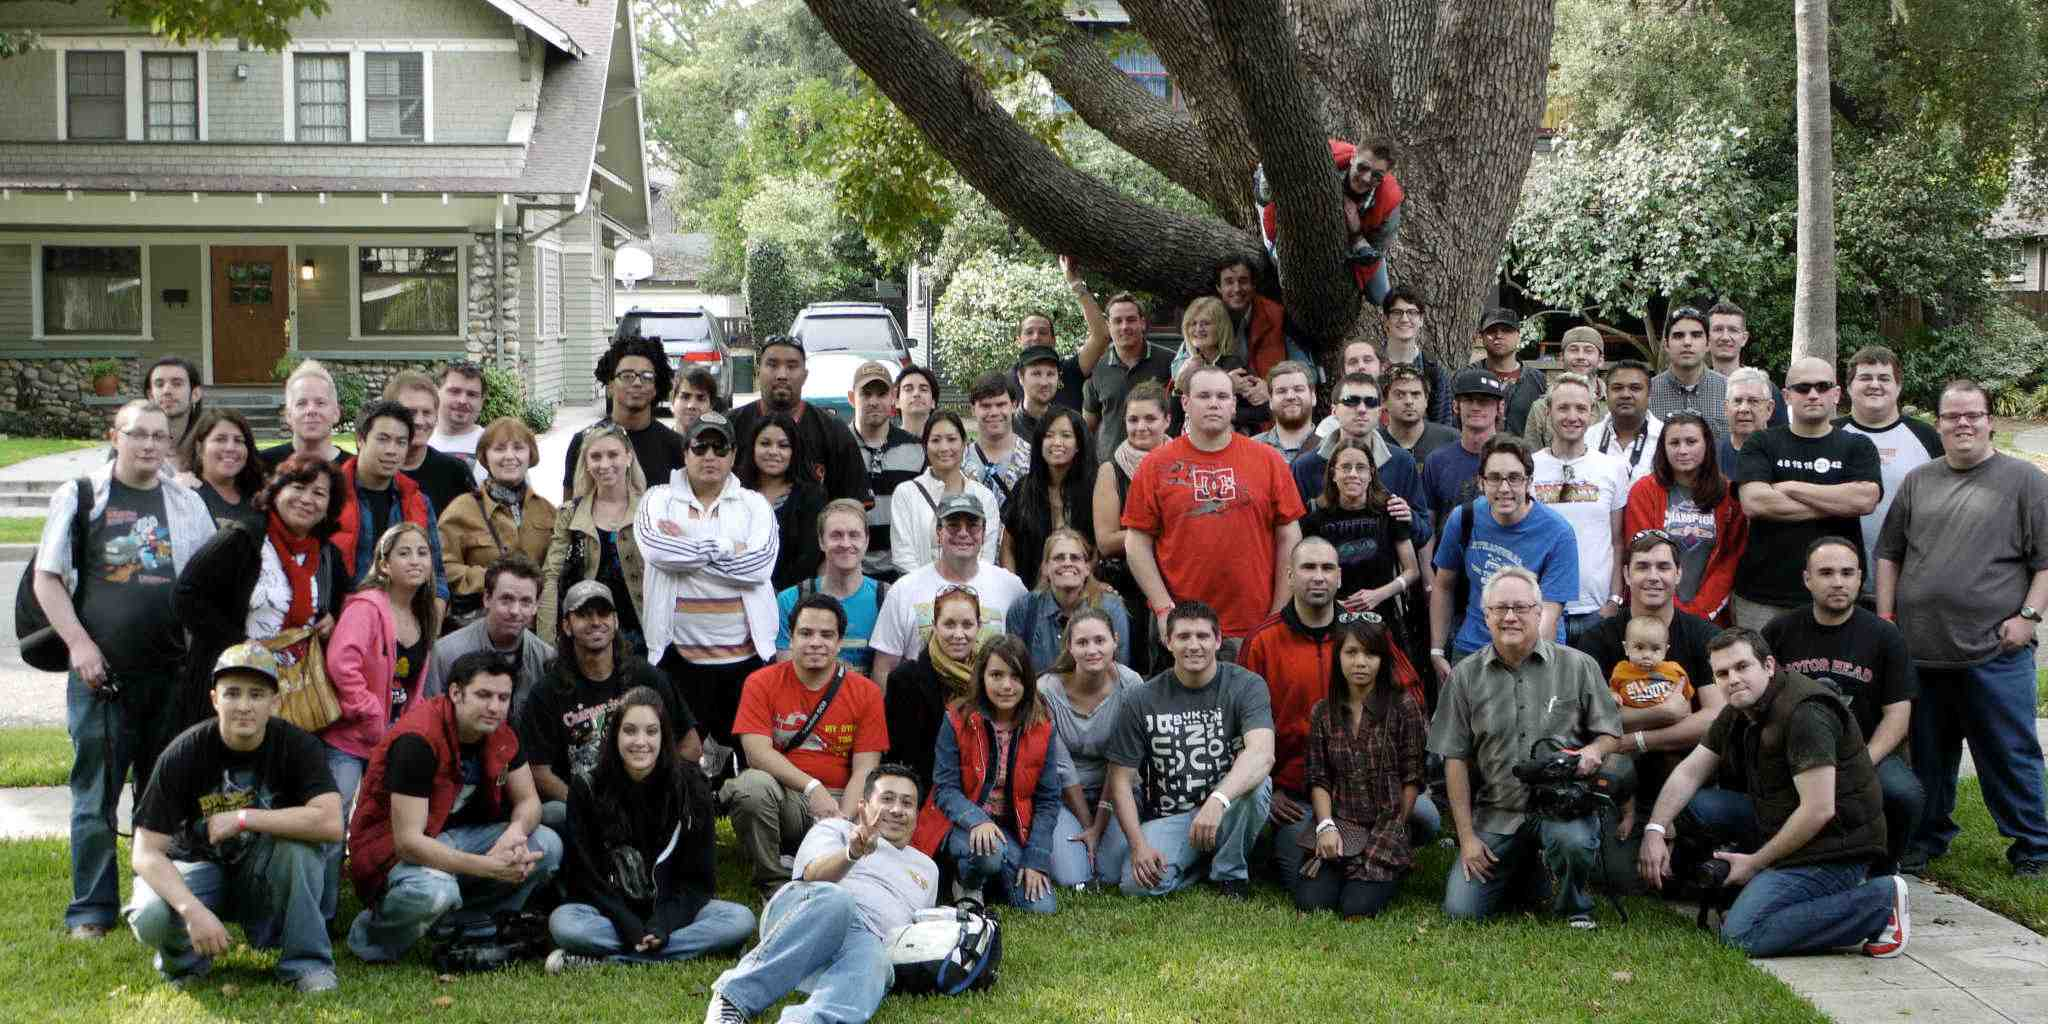 Group photo of visitors at the Peeping Tom tree with the film's director, John McDonald